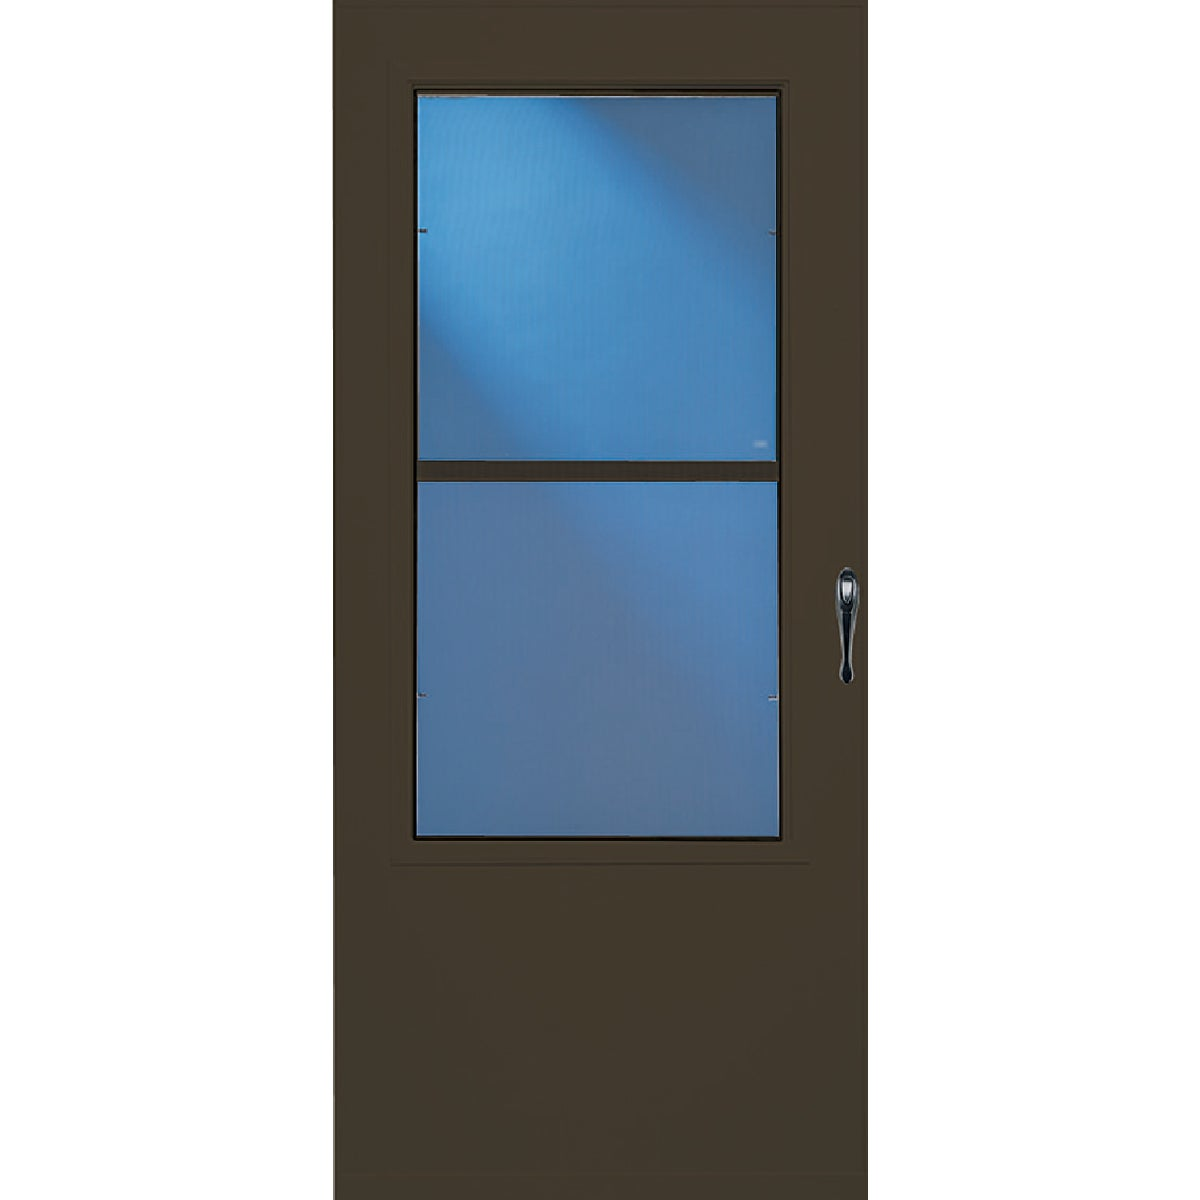 "32"" BRN MULTI-VENT DOOR - 83001 by Larson Mfg Co"